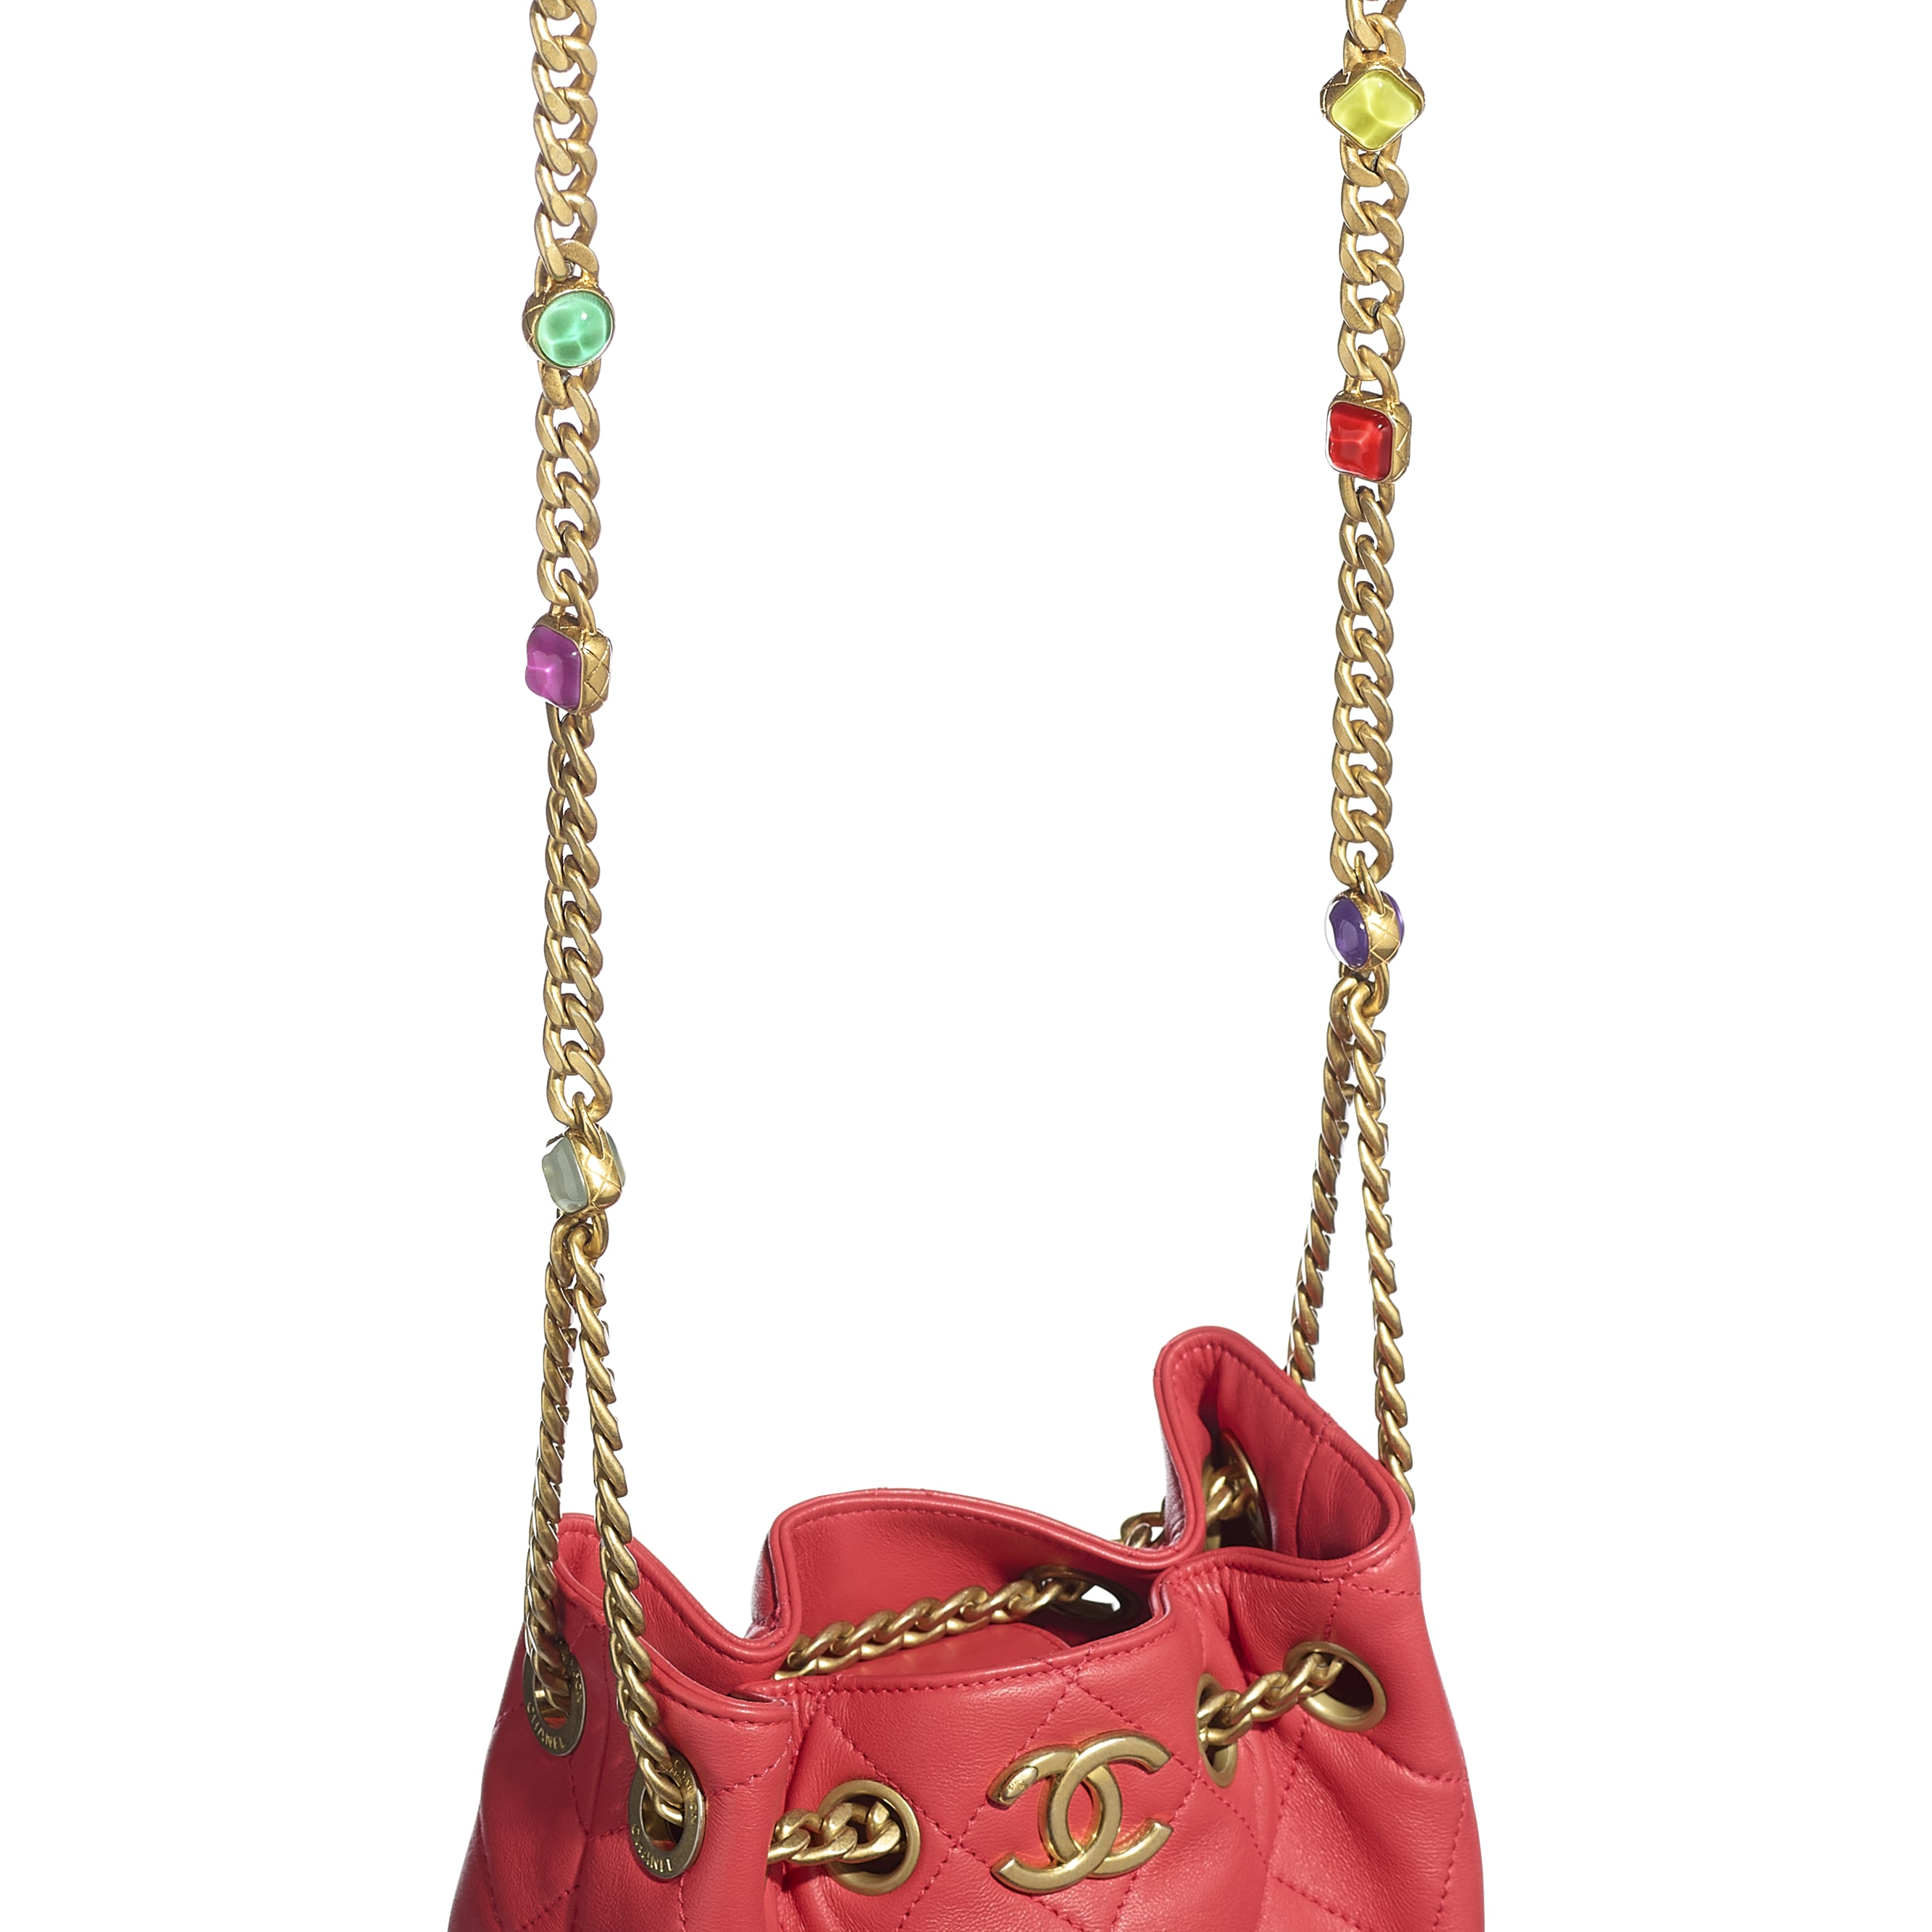 Drawstring Bag - Red - Lambskin, Resin & Gold-Tone Metal - CHANEL - Extra view - see standard sized version